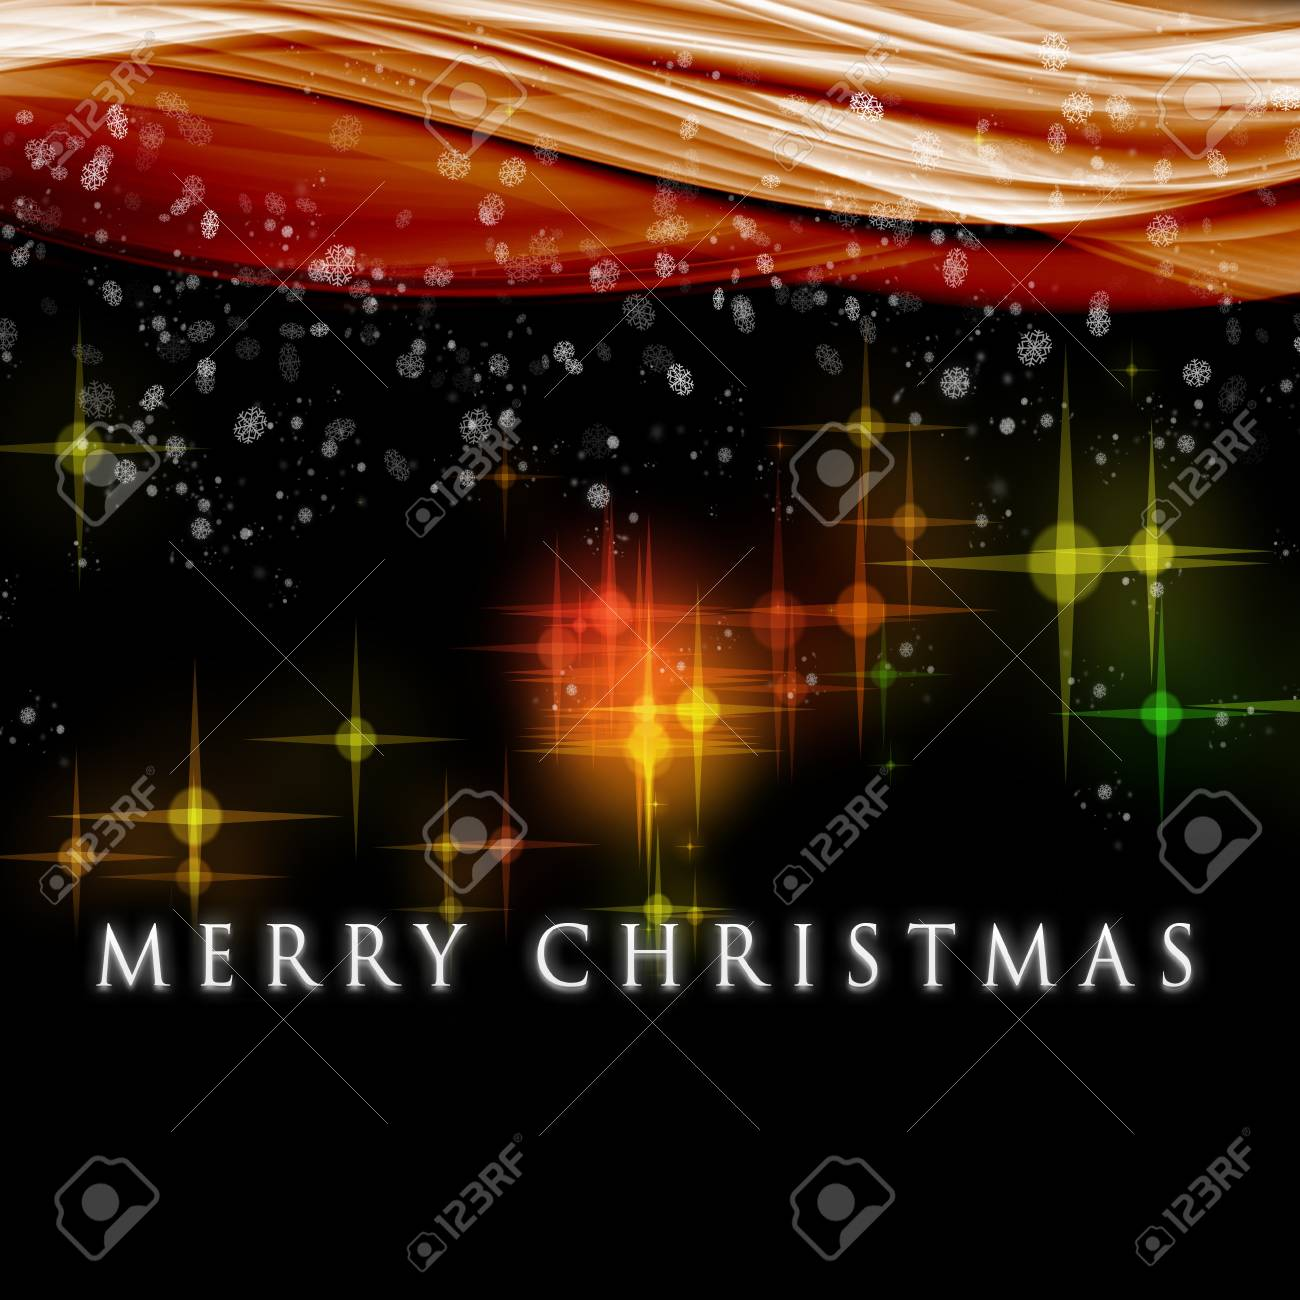 Fantastic Christmas wave design with snowflakes and glowing stars Stock Photo - 14772265